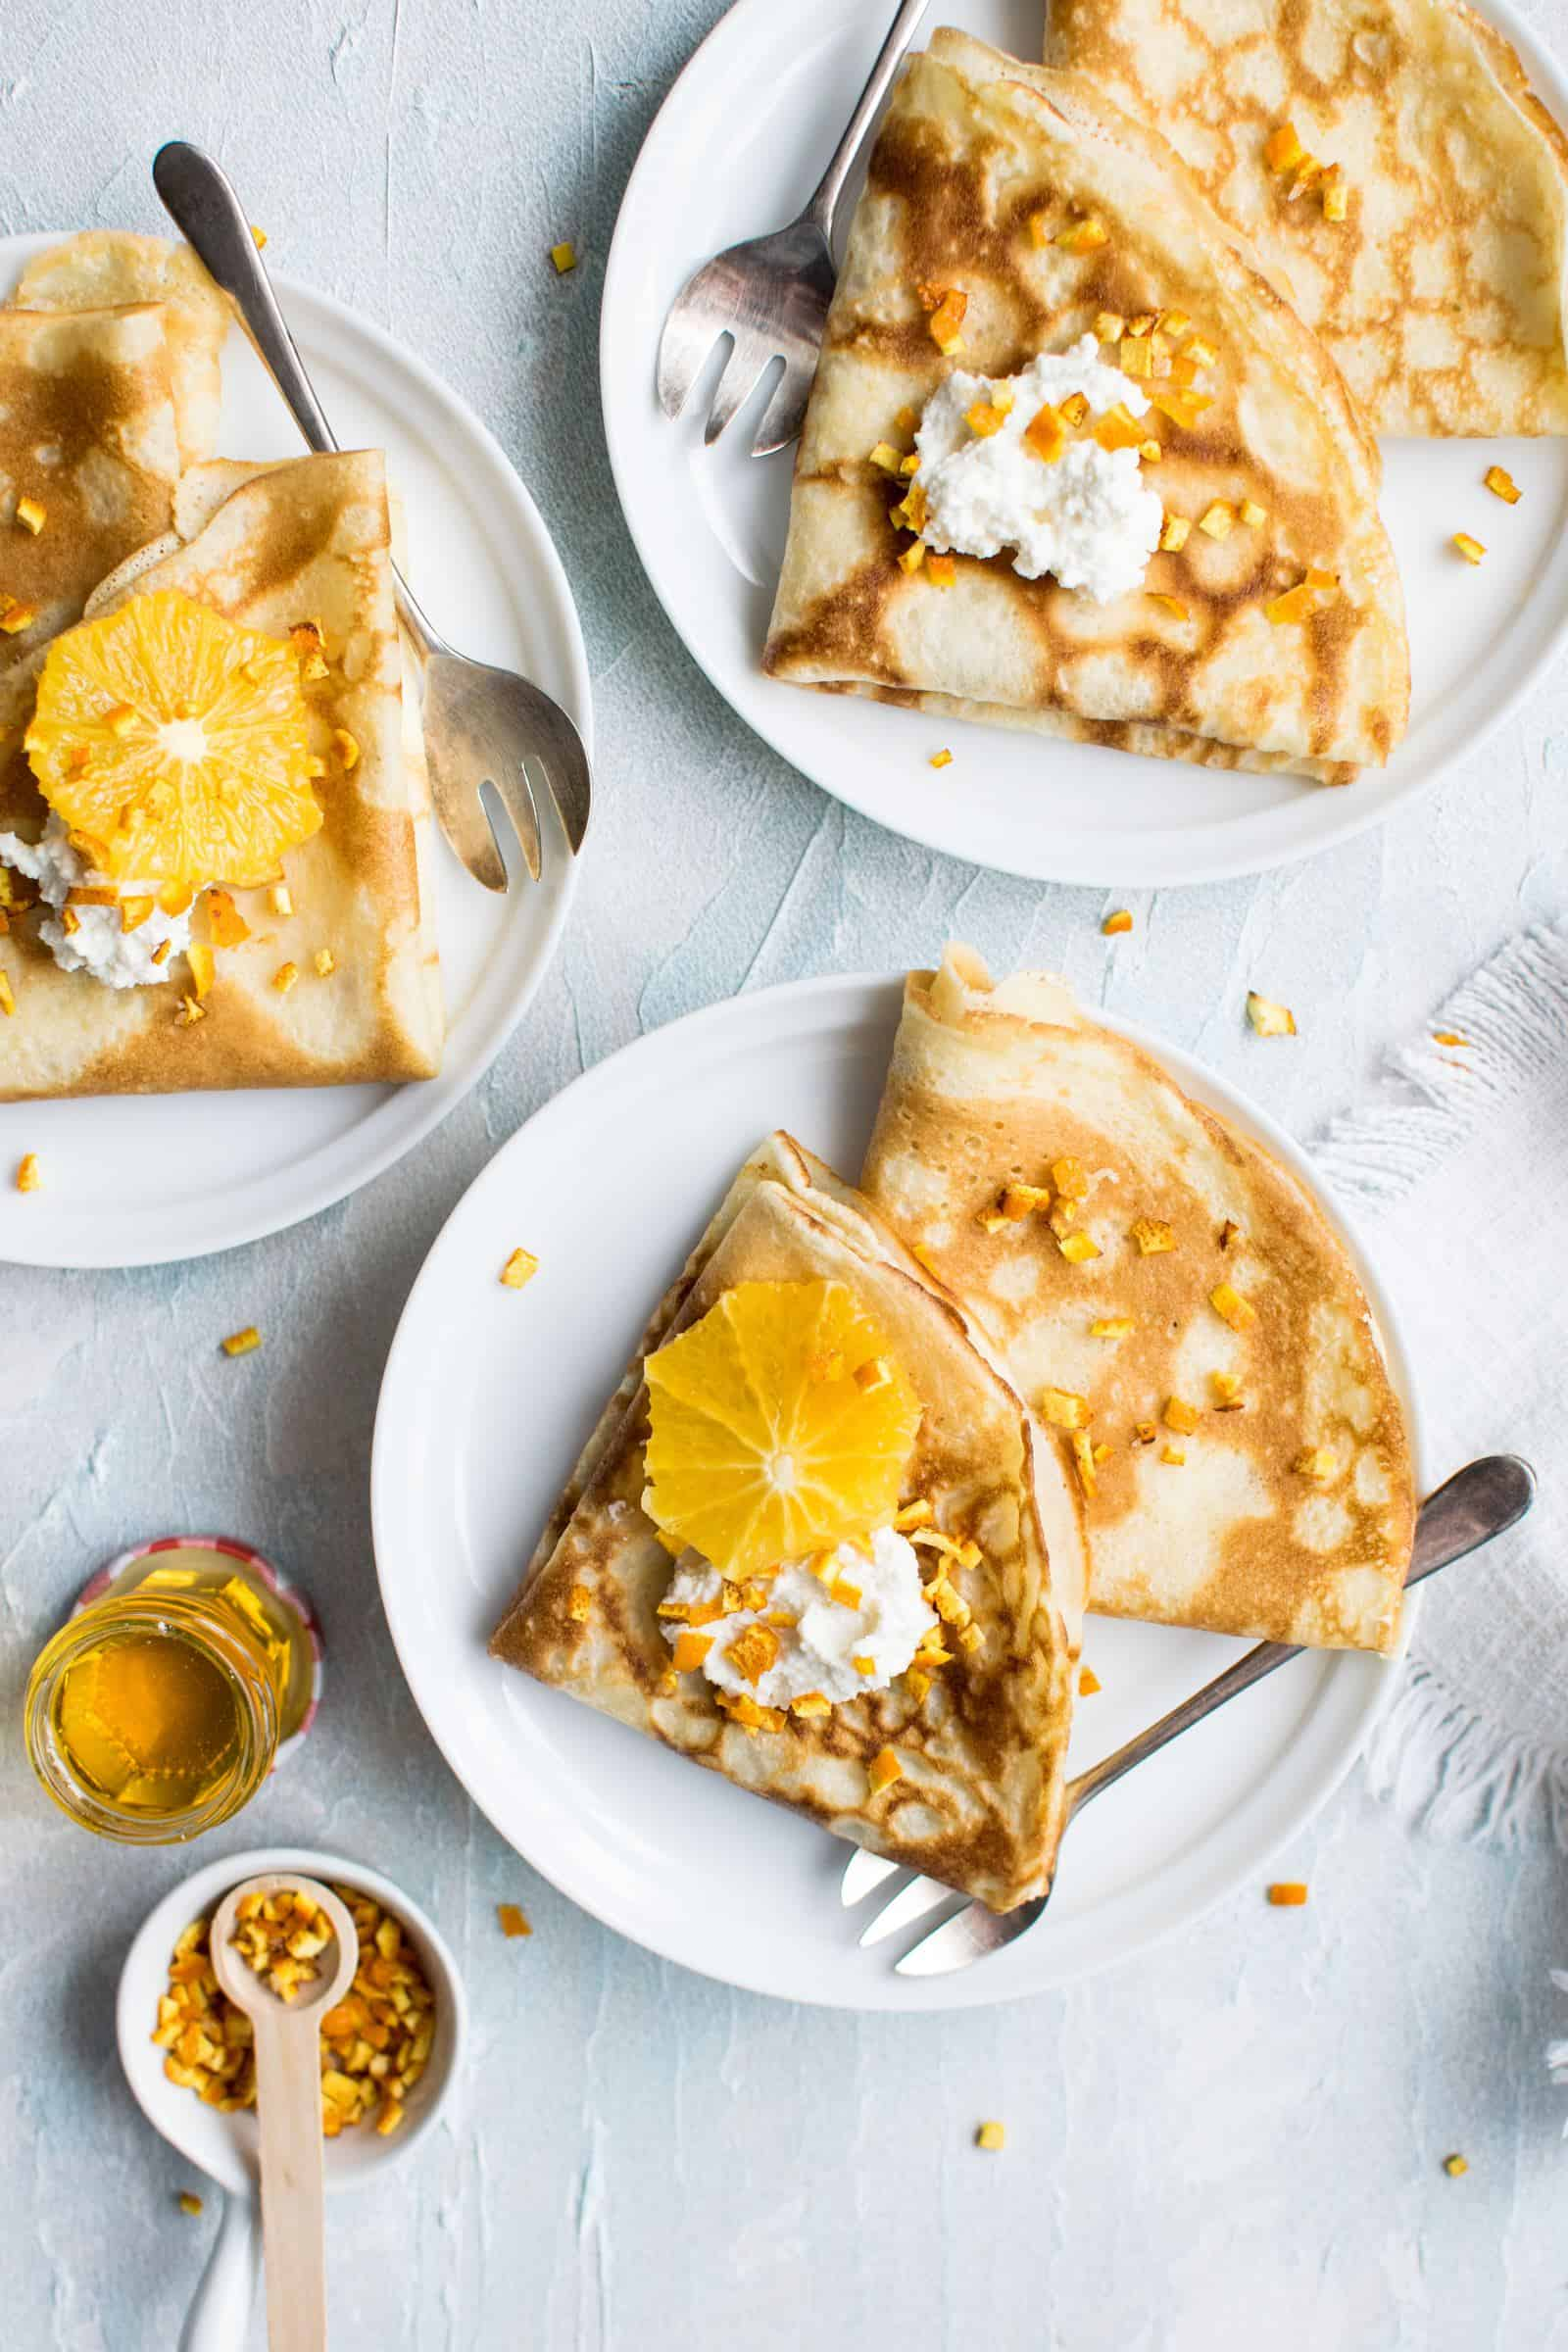 a few plates of crepes with oranges and honey as the toppings